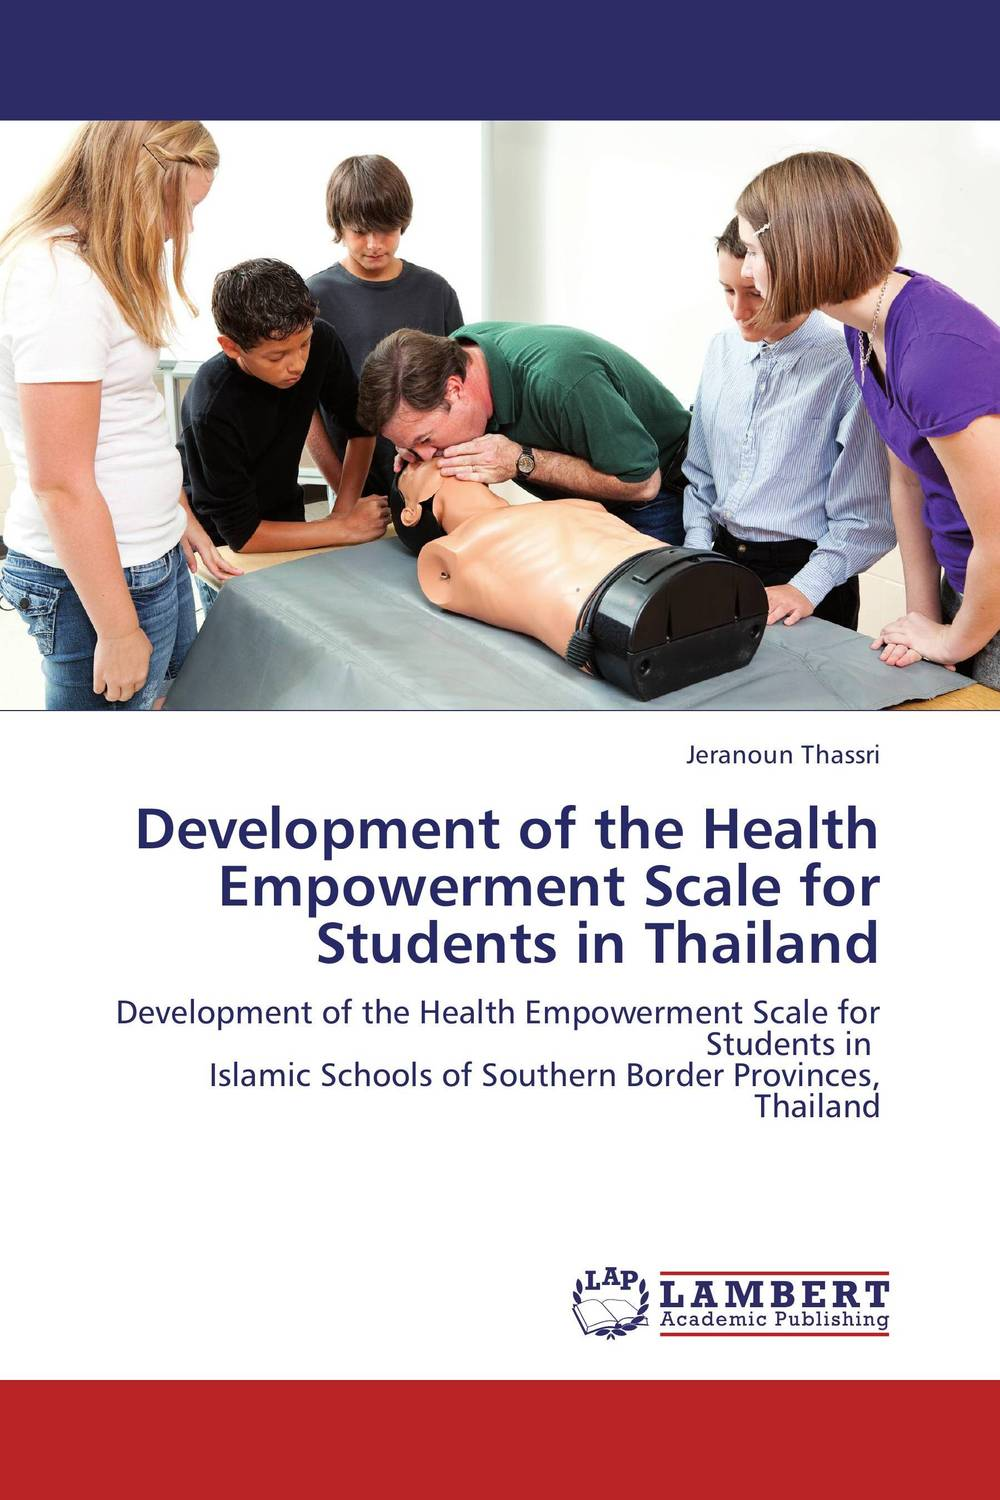 Development of the Health Empowerment Scale for Students in Thailand theatre for women empowerment and development